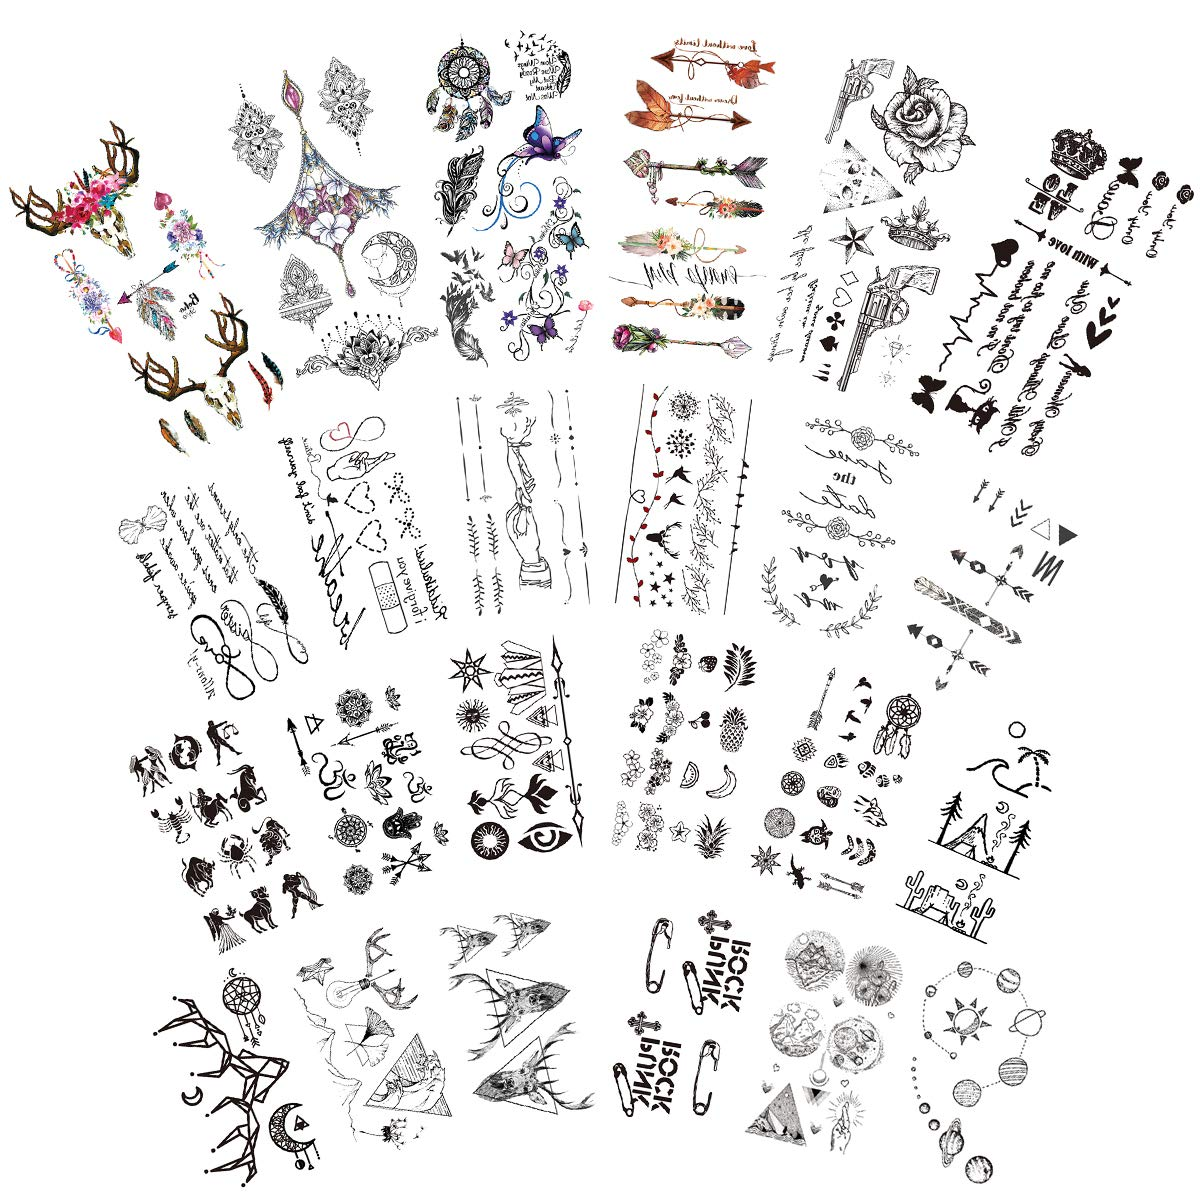 Temporary Tattoos Stickers, Small Temporary Tattoo 24 sheets Fake Tattoos Waterproof Body Sticker Mixed Style